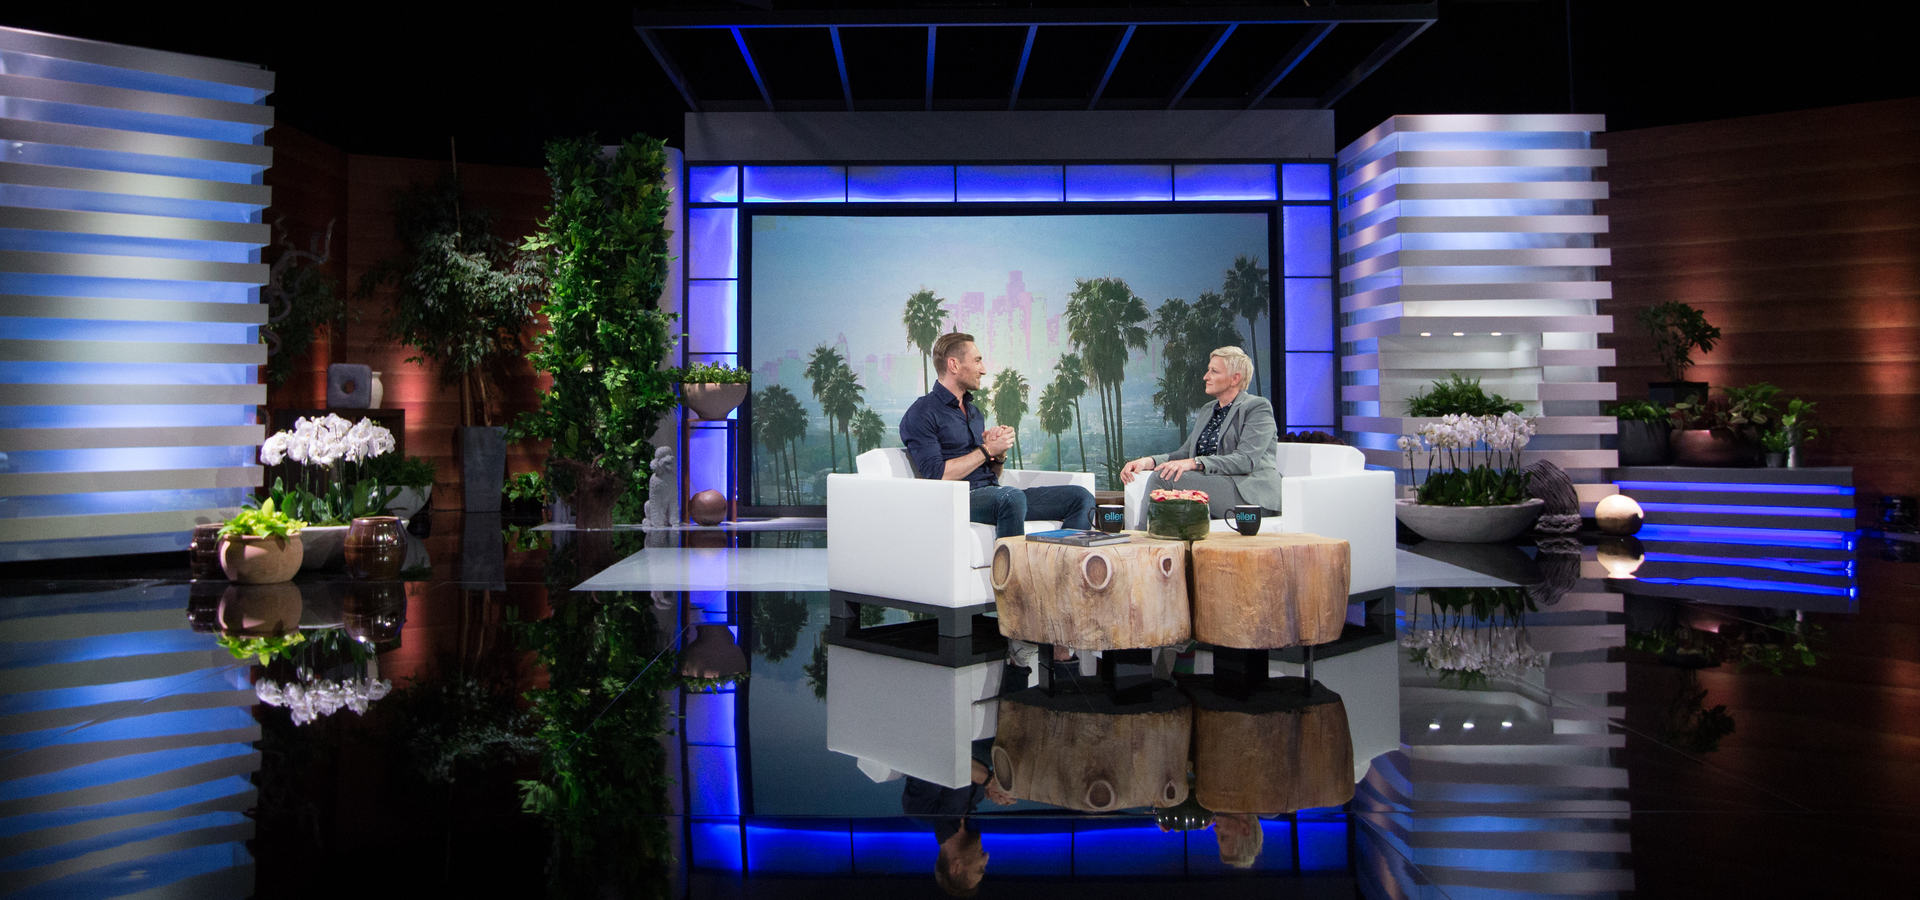 This guy has built a TV studio & produced a show that looks like Ellen's just to get her invitation